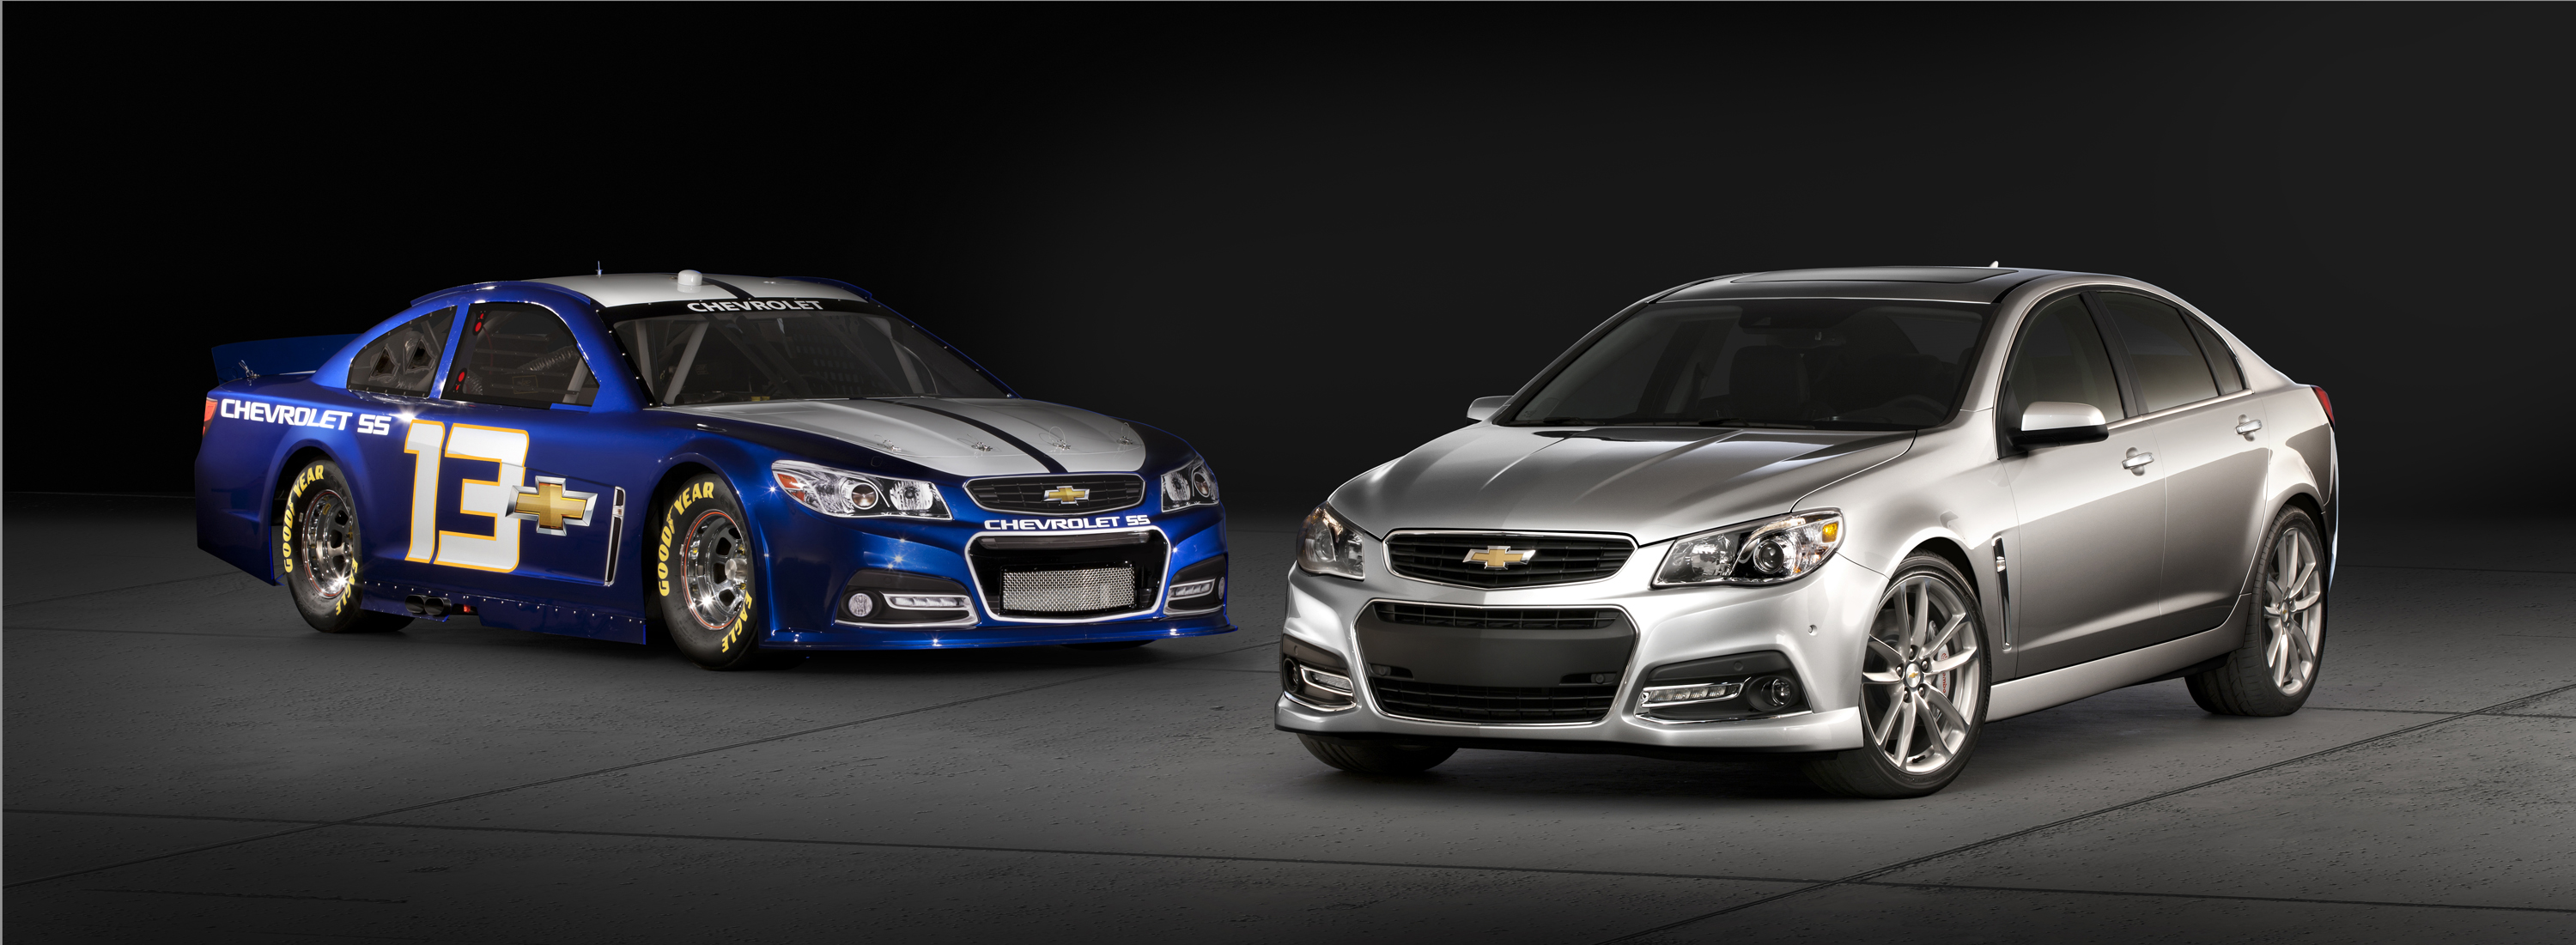 2014 Chevrolet SS Performance Review - Top Speed